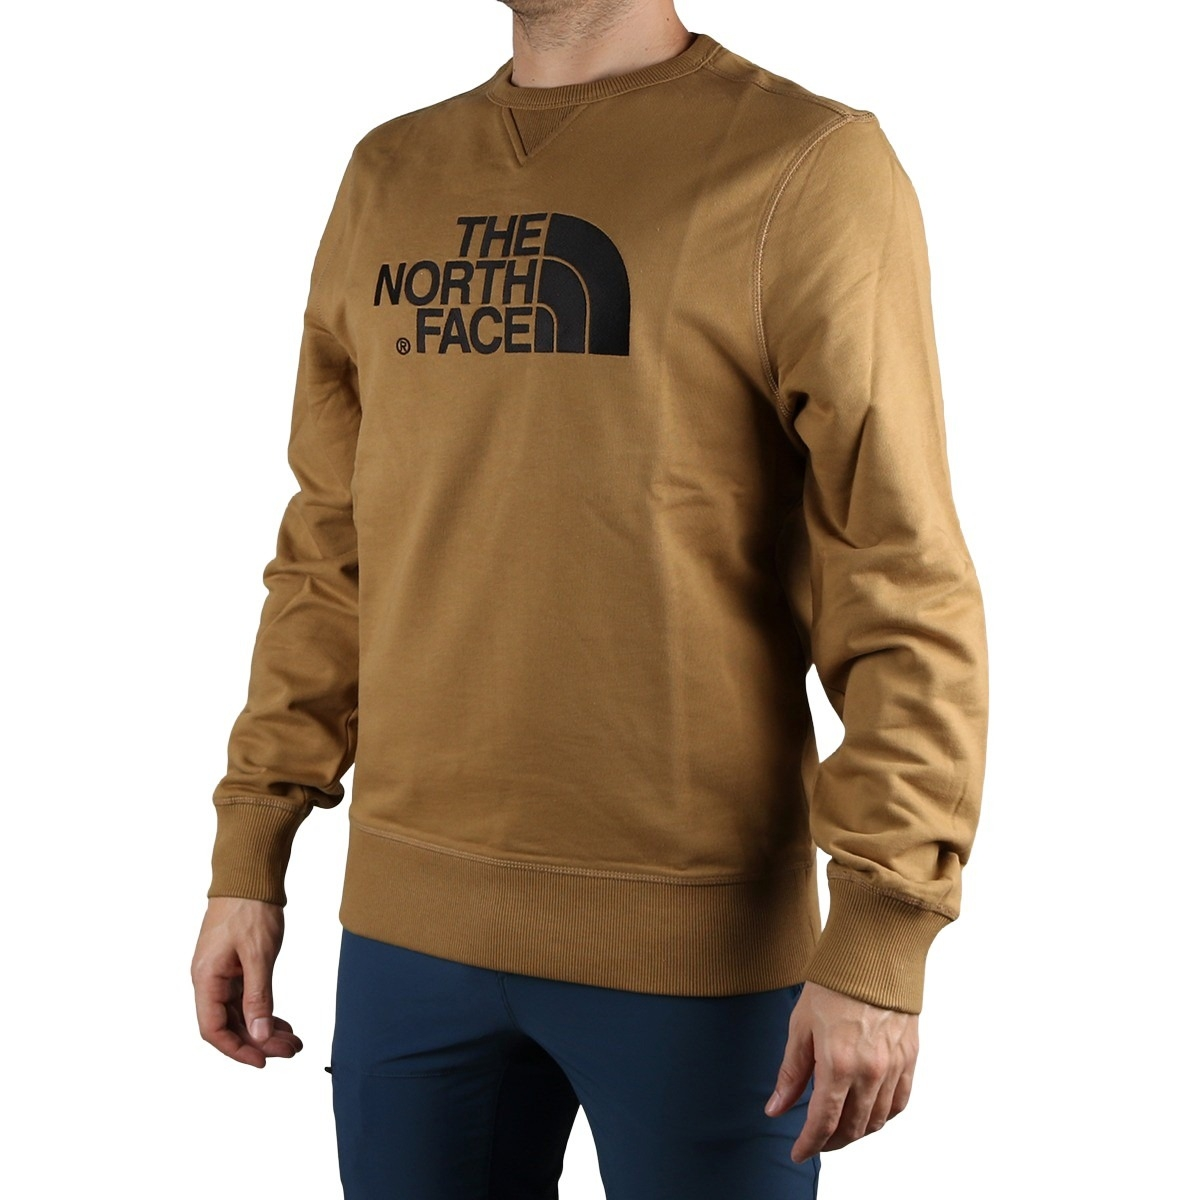 The North Face Sudadera Drew Peak British Kaki Hombre